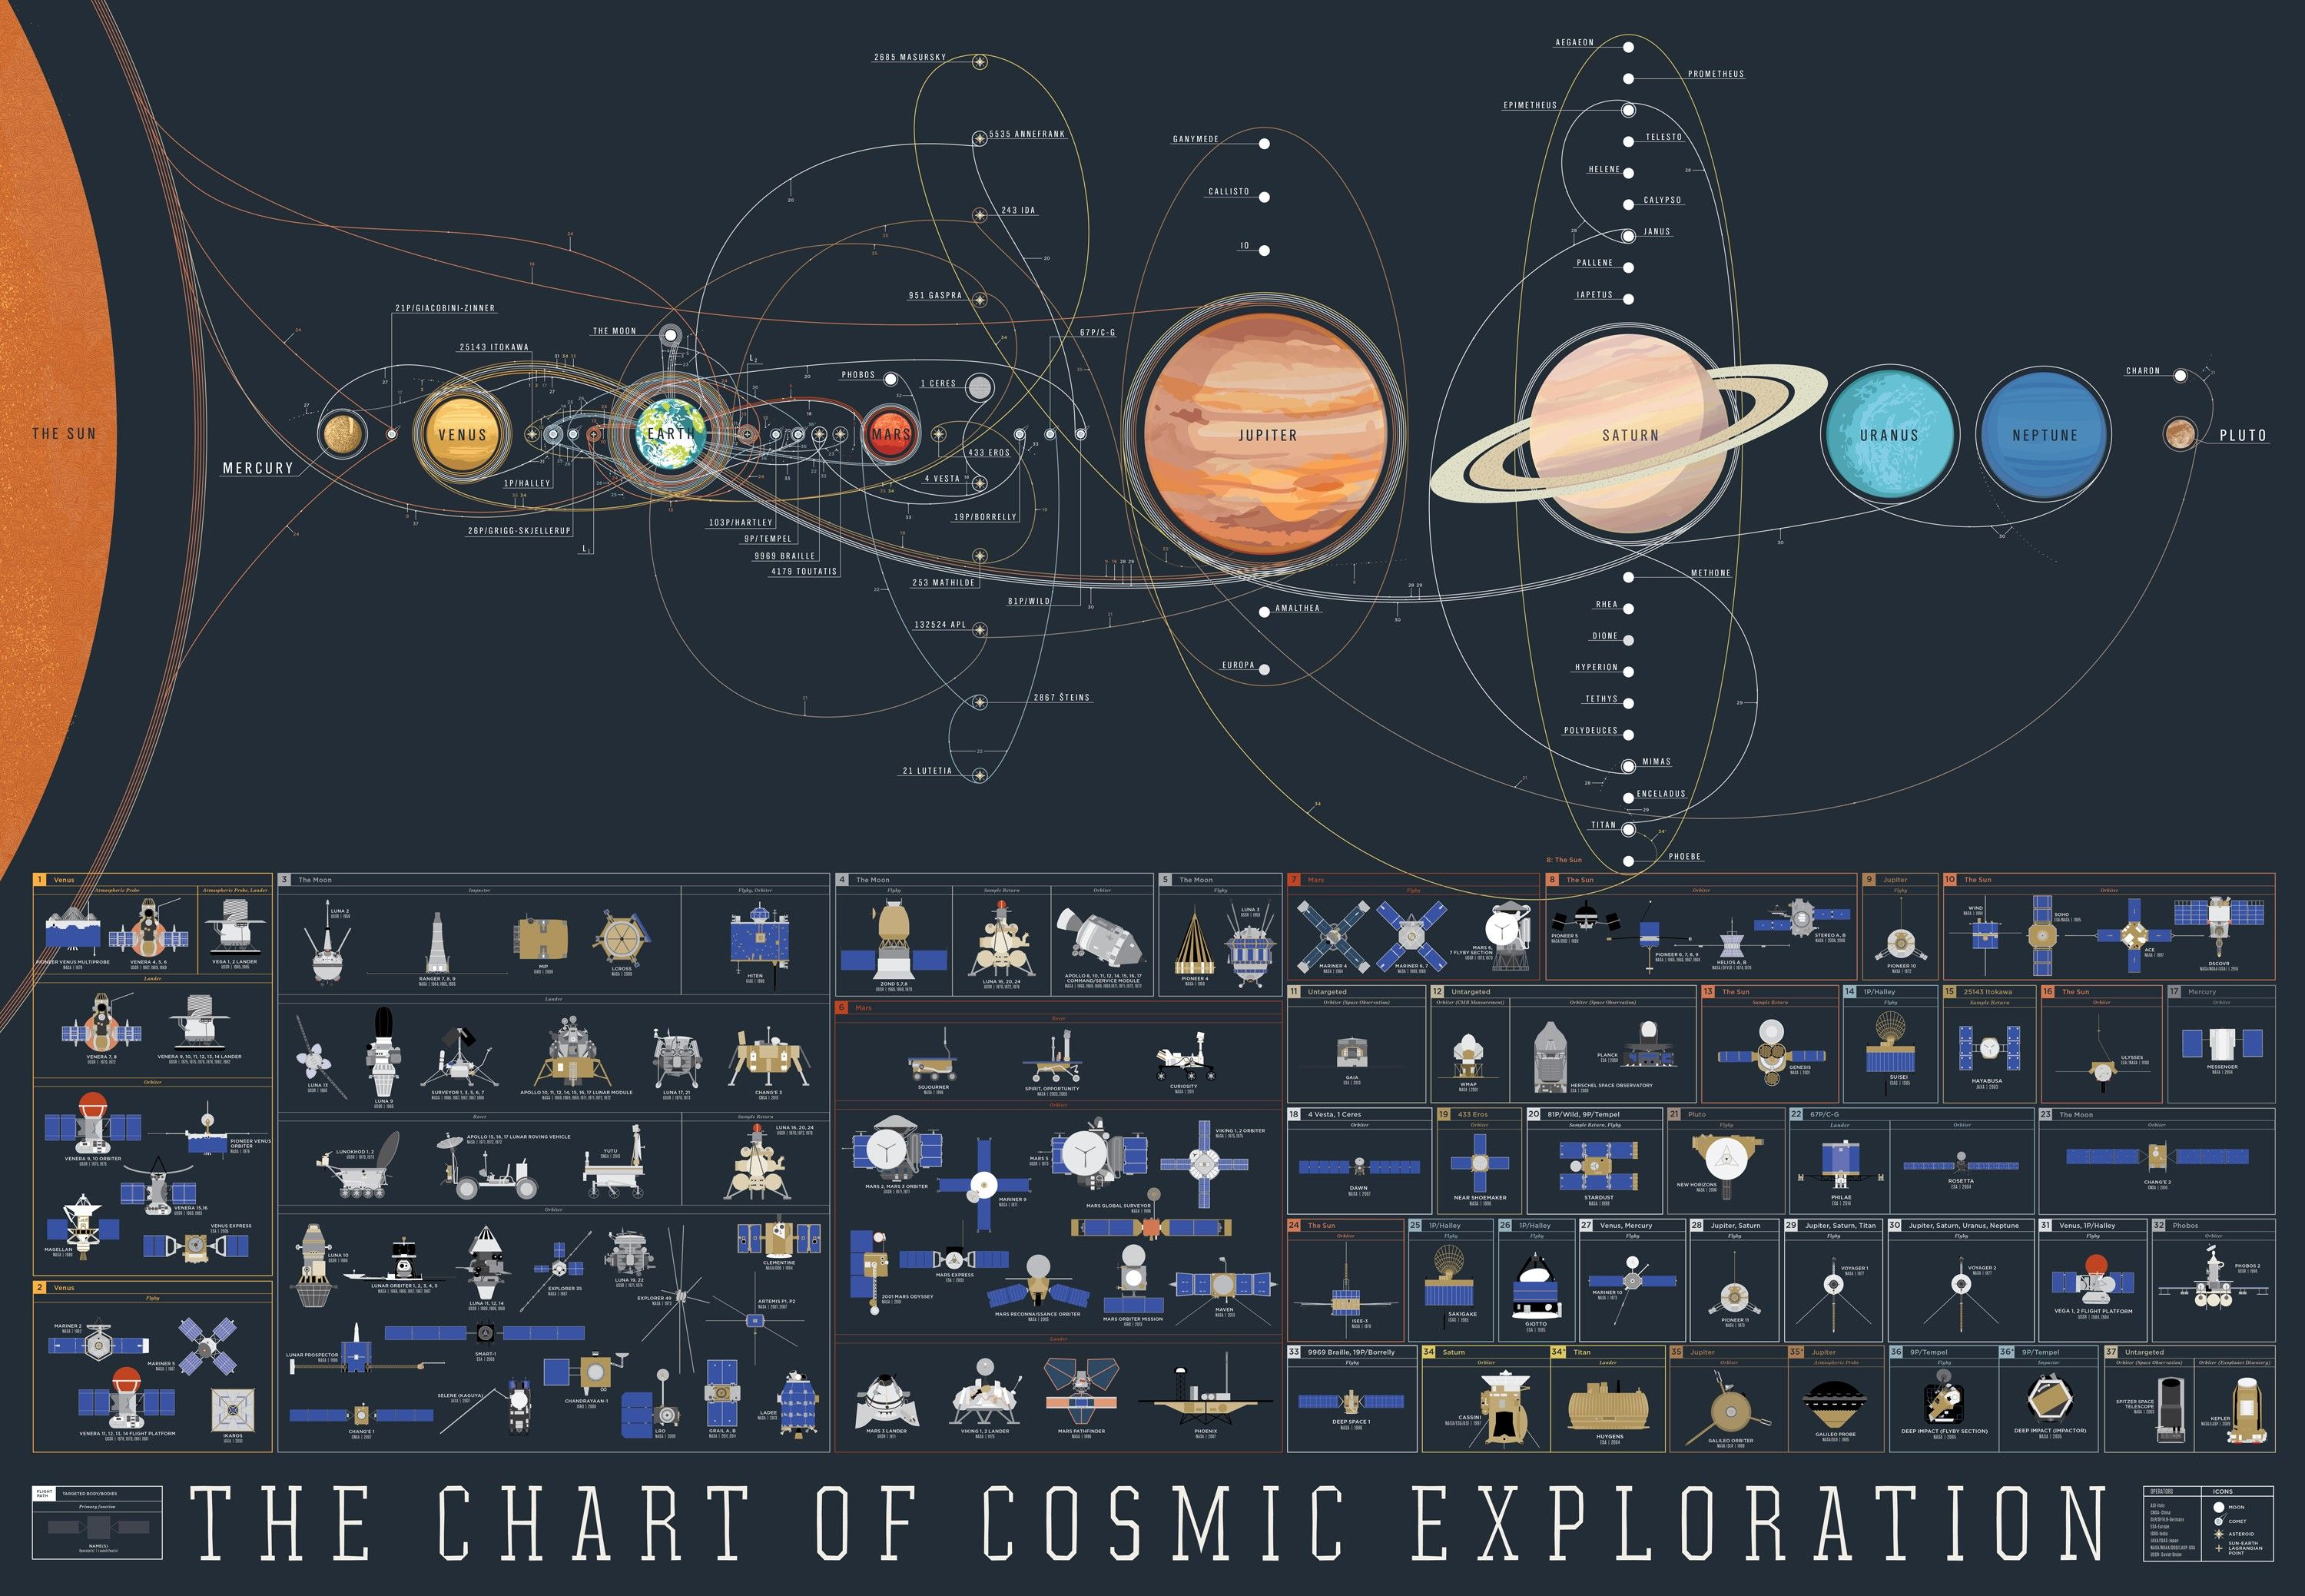 Just The The Chart Of Cosmic Exploration Hd Wallpaper From